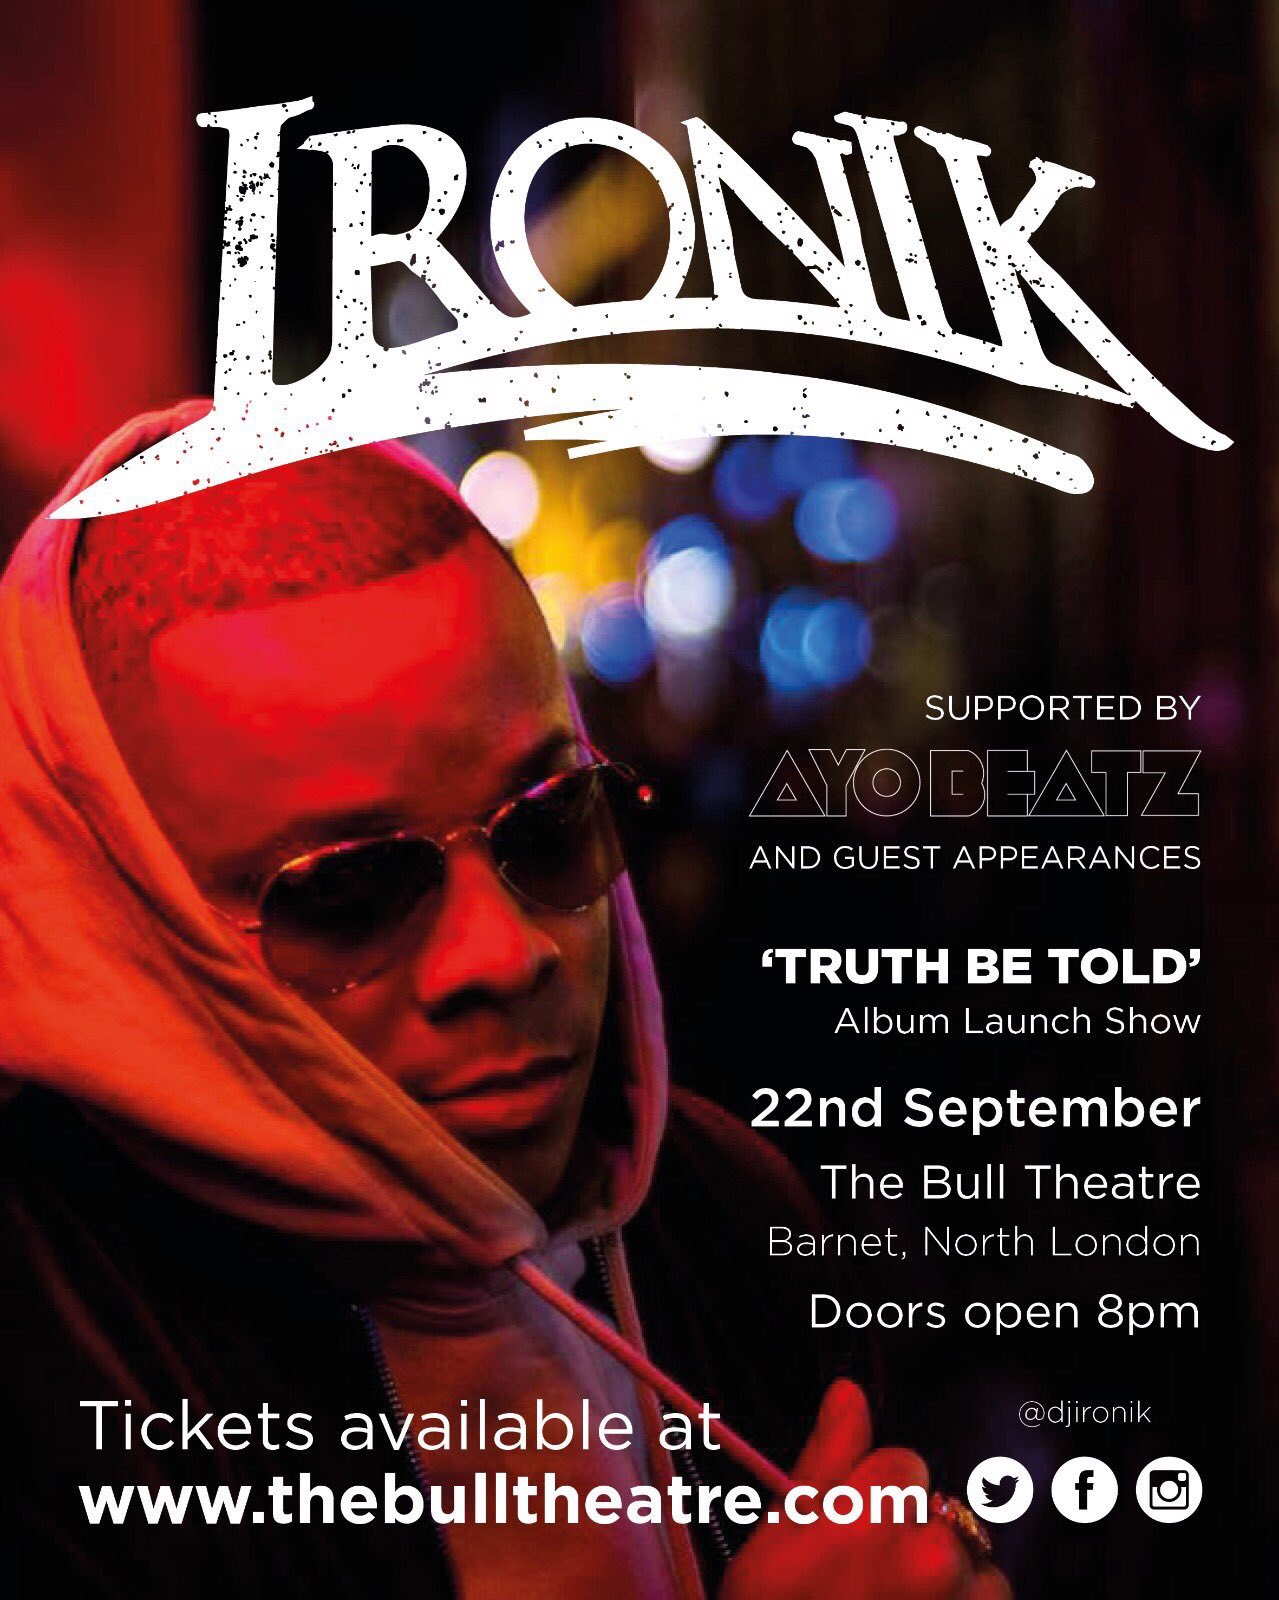 RT @LaVida_PR: 22nd September looking forward to see @DJIronik Album Launch Show https://t.co/w2Cw5IiPkT